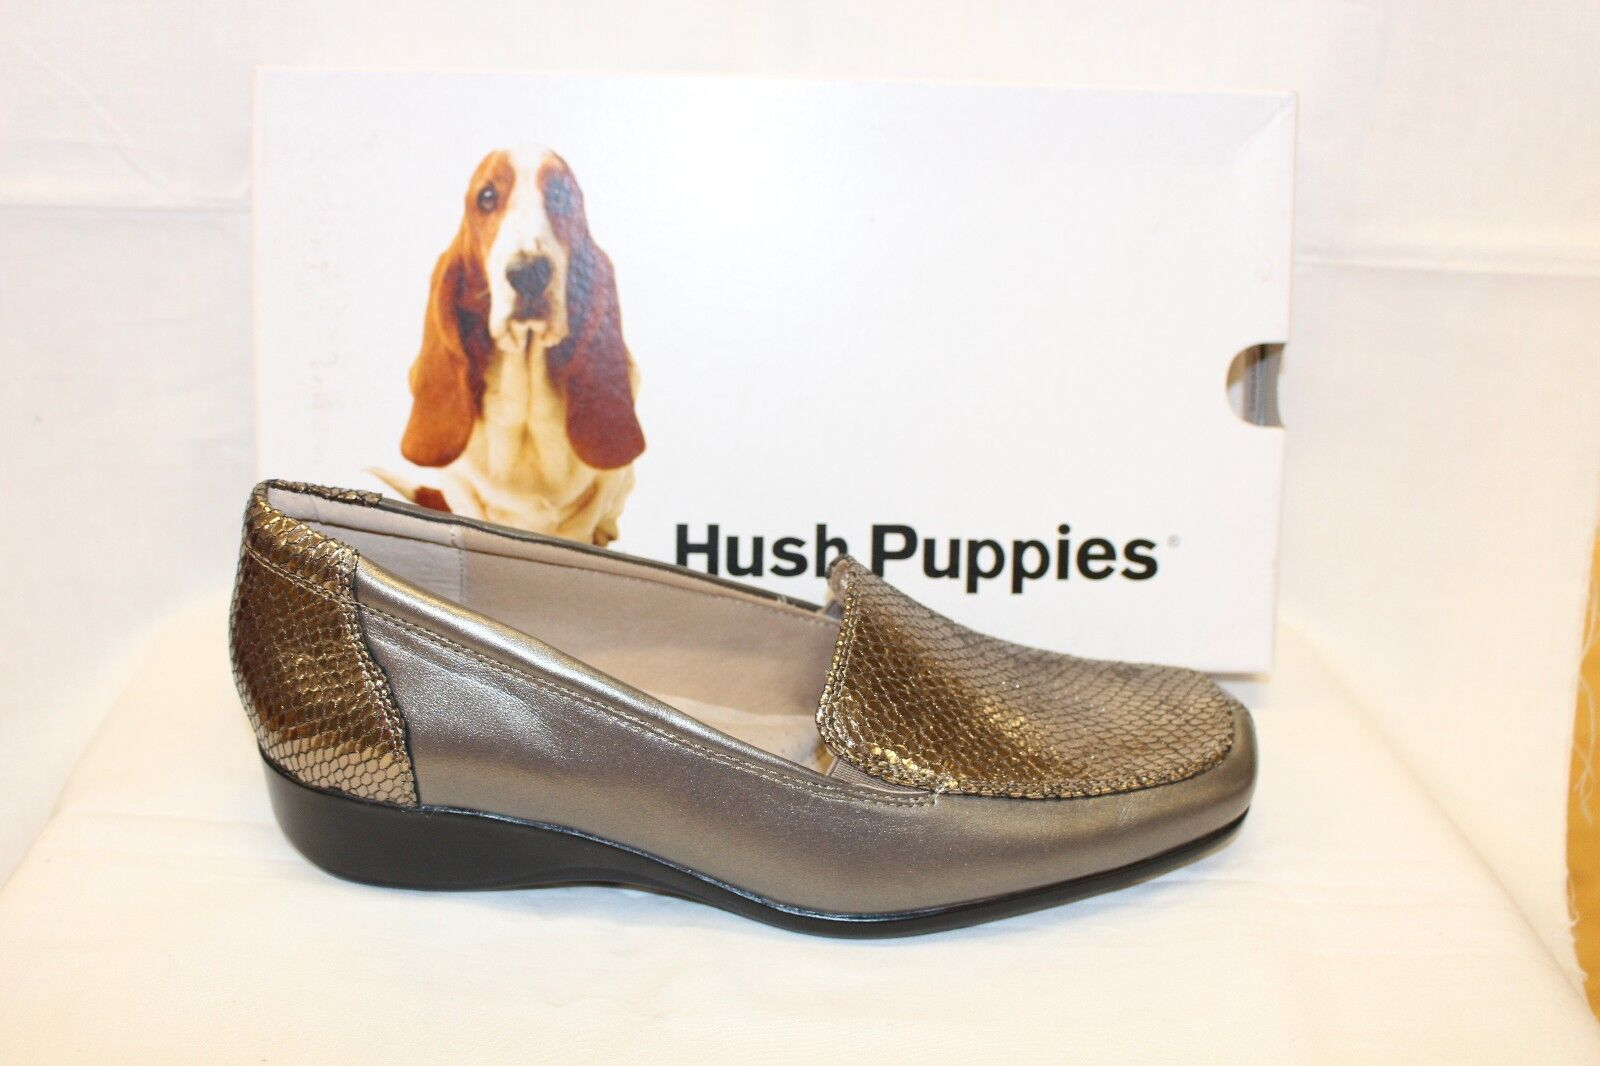 LADIES SHOES/FOOTWEAR - Hush Puppies Meadow taupe metal moccassin